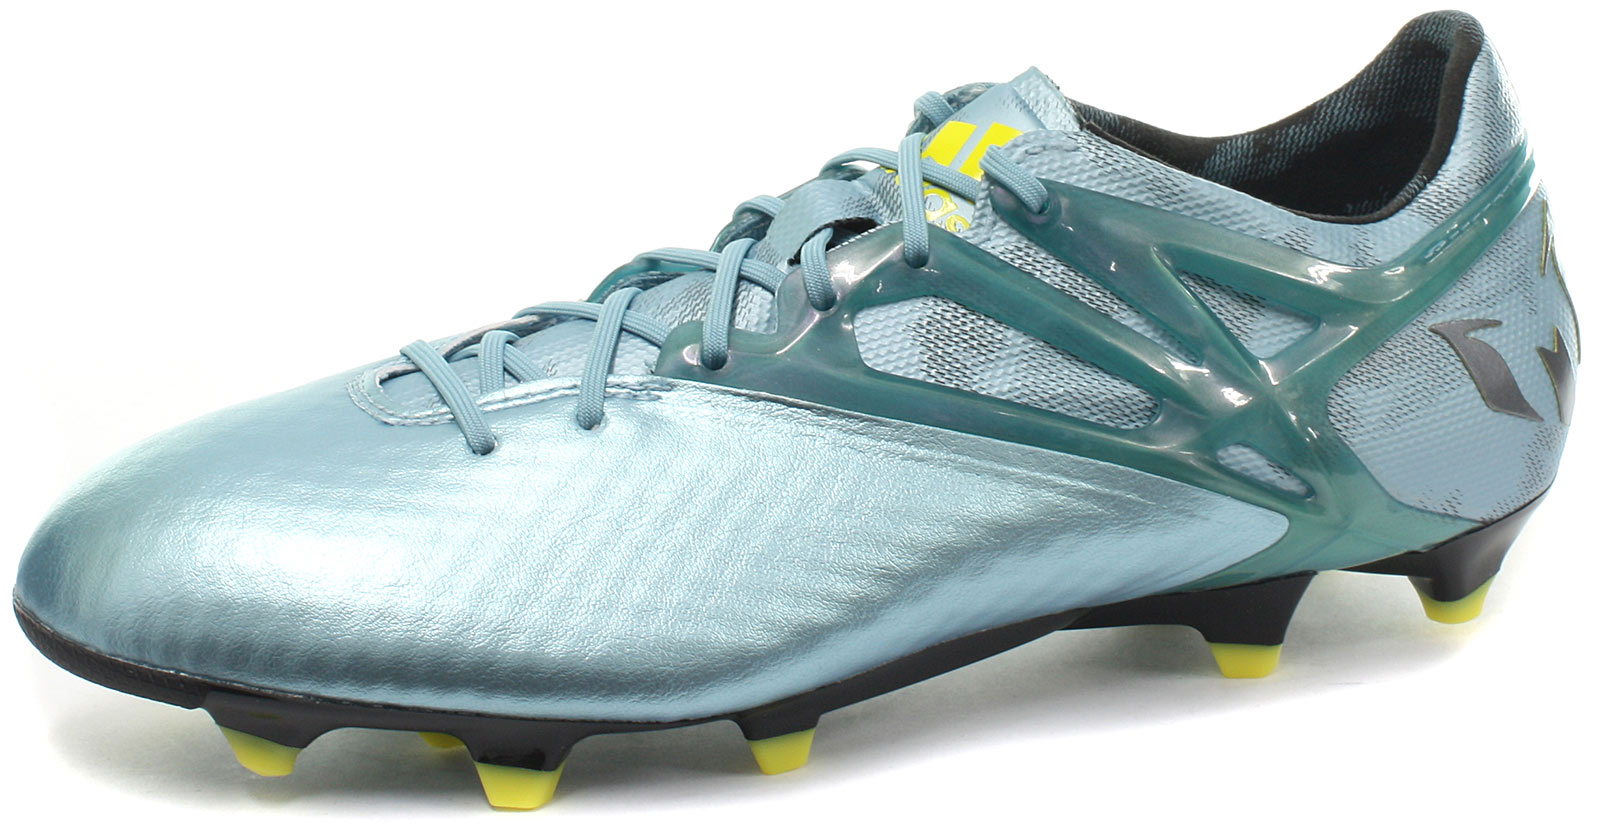 New adidas Messi 15.1 FG AG Mens Football Boots   Soccer Cleats ALL ... 8bd0cd38366d2